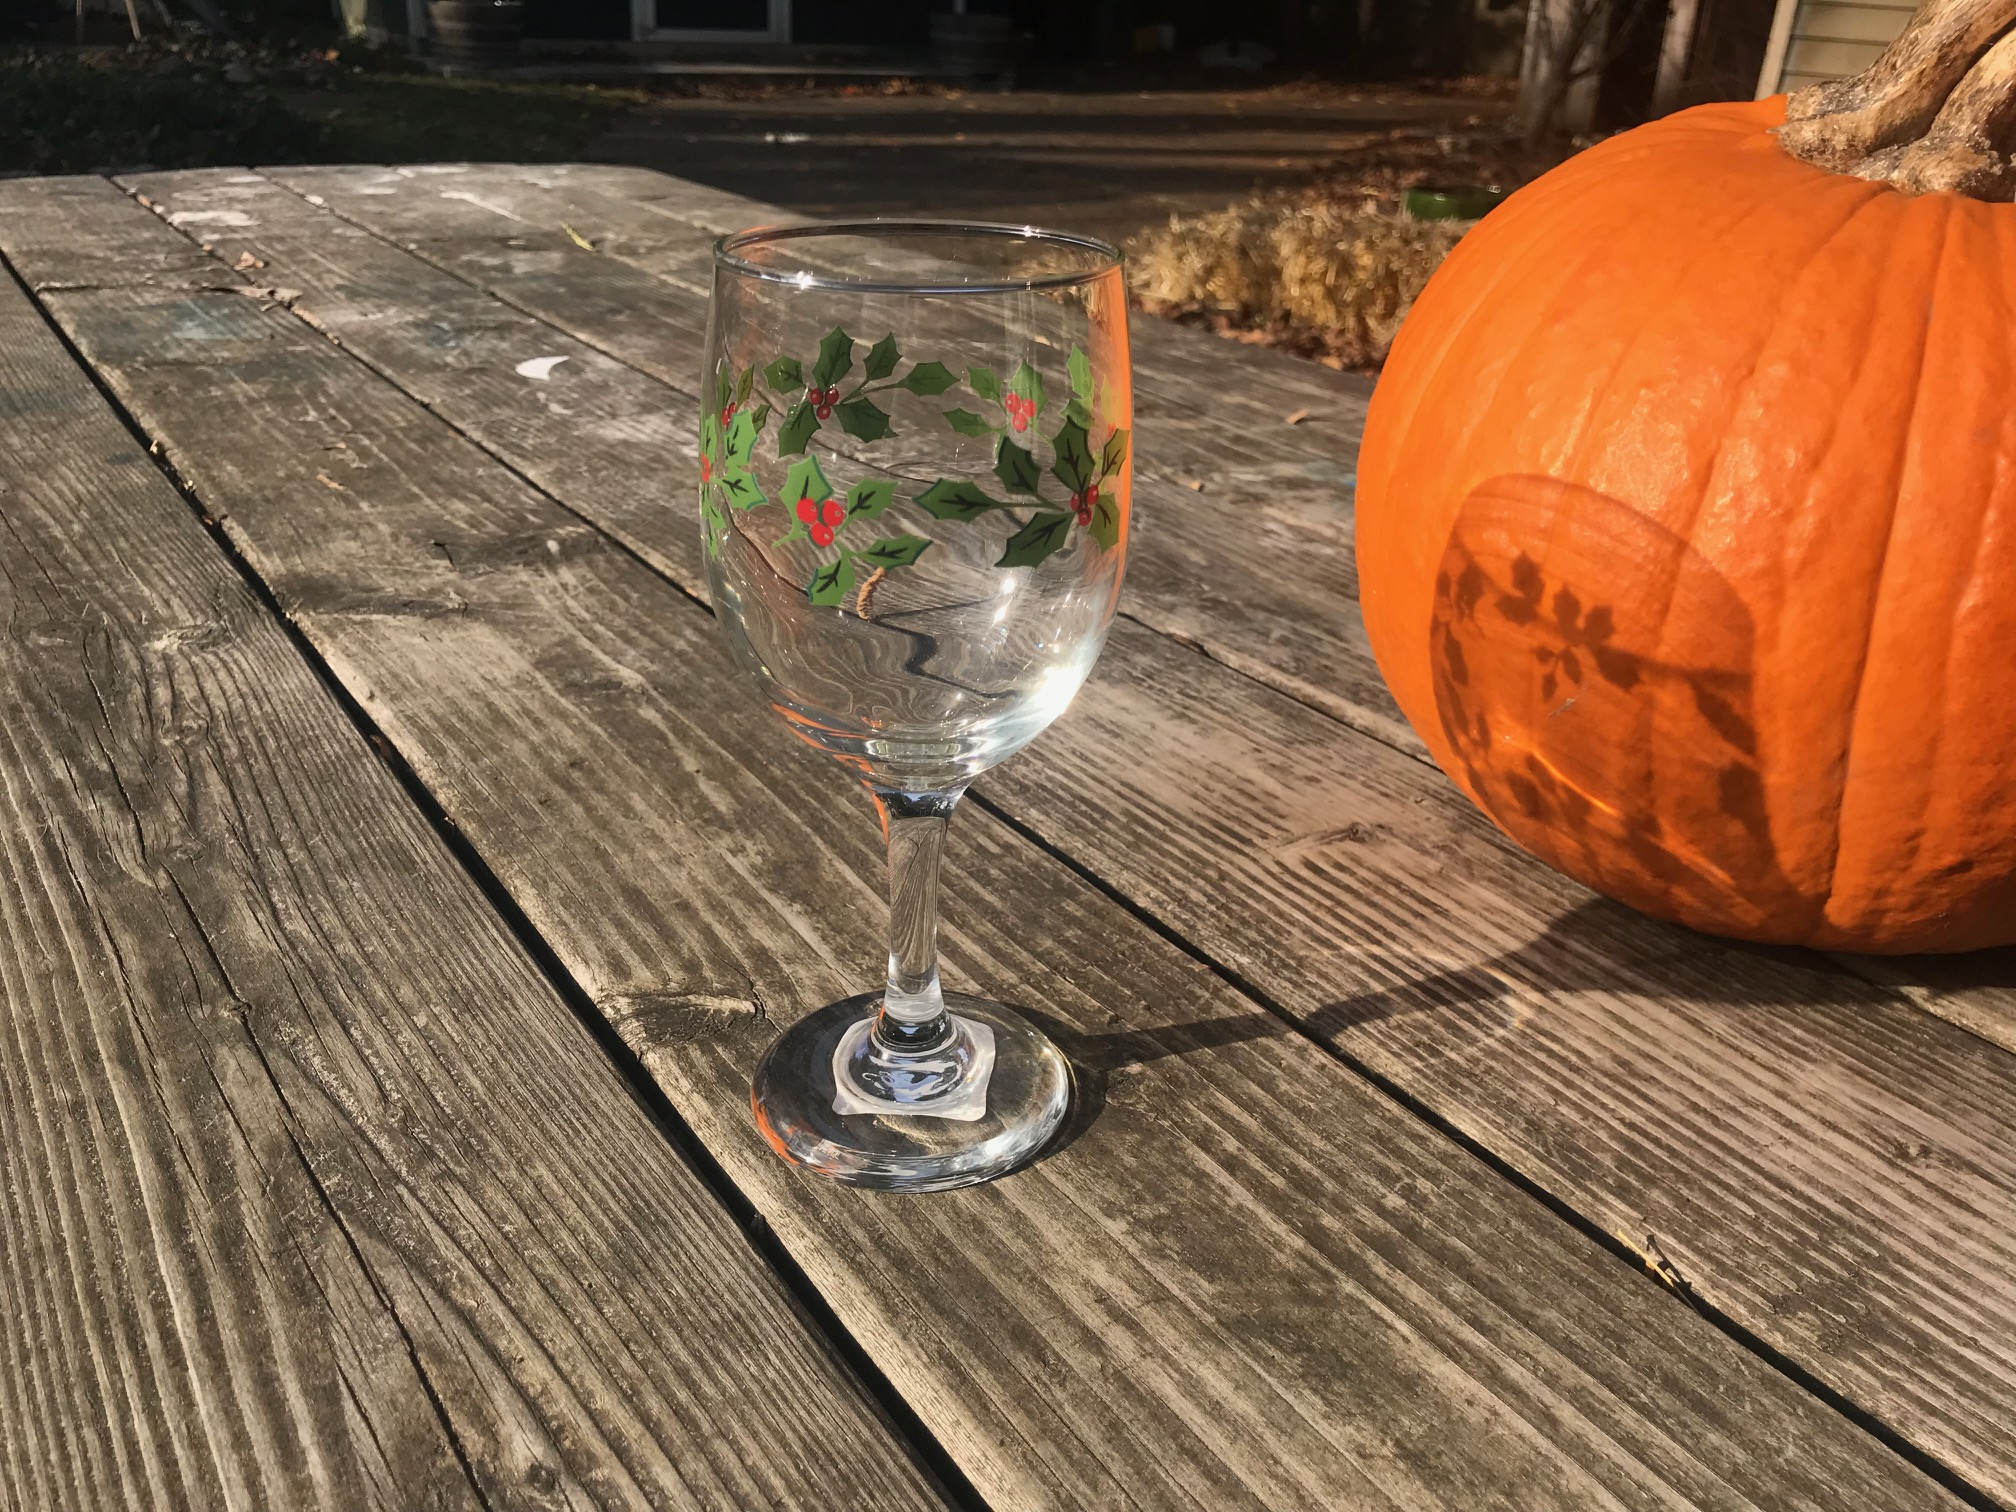 2018 Dollar Tree Store Christmas Wine Glass By Greenbrier International: 1,299 ppm Cadmium